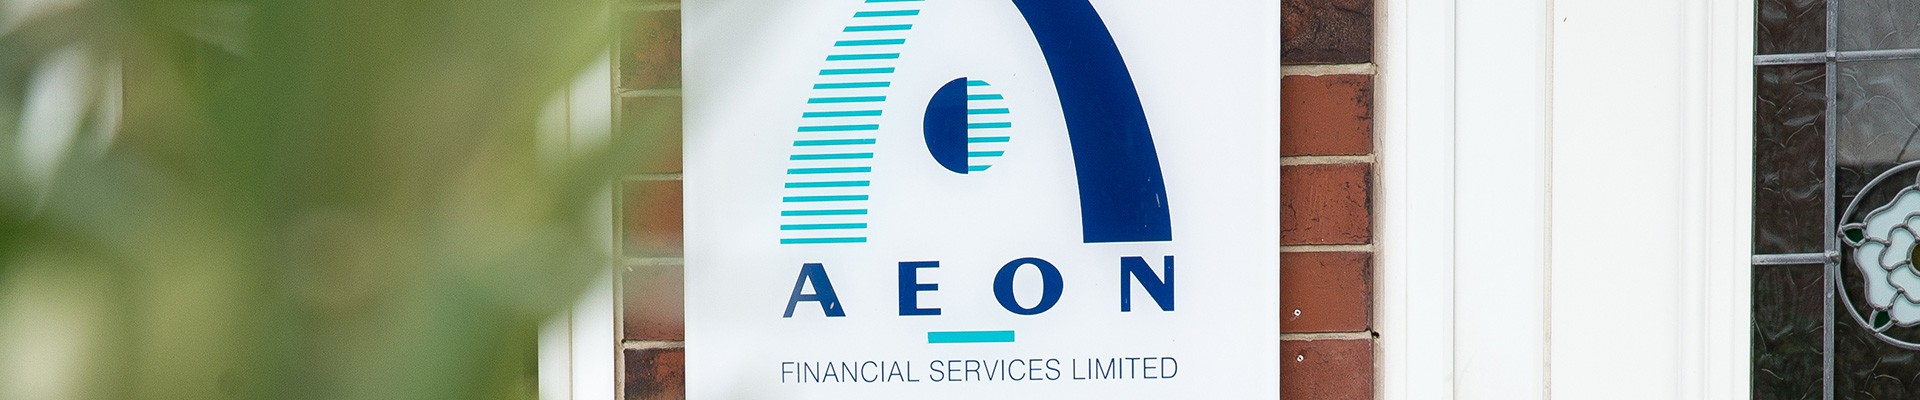 Looking for impartial financial advice tailored to suit your personal or business circumstances? Based in Rotherham, AEON Financial Services has over 15 years of experience providing quality wealth management services for individuals, plus a full range of financial services for organisations.